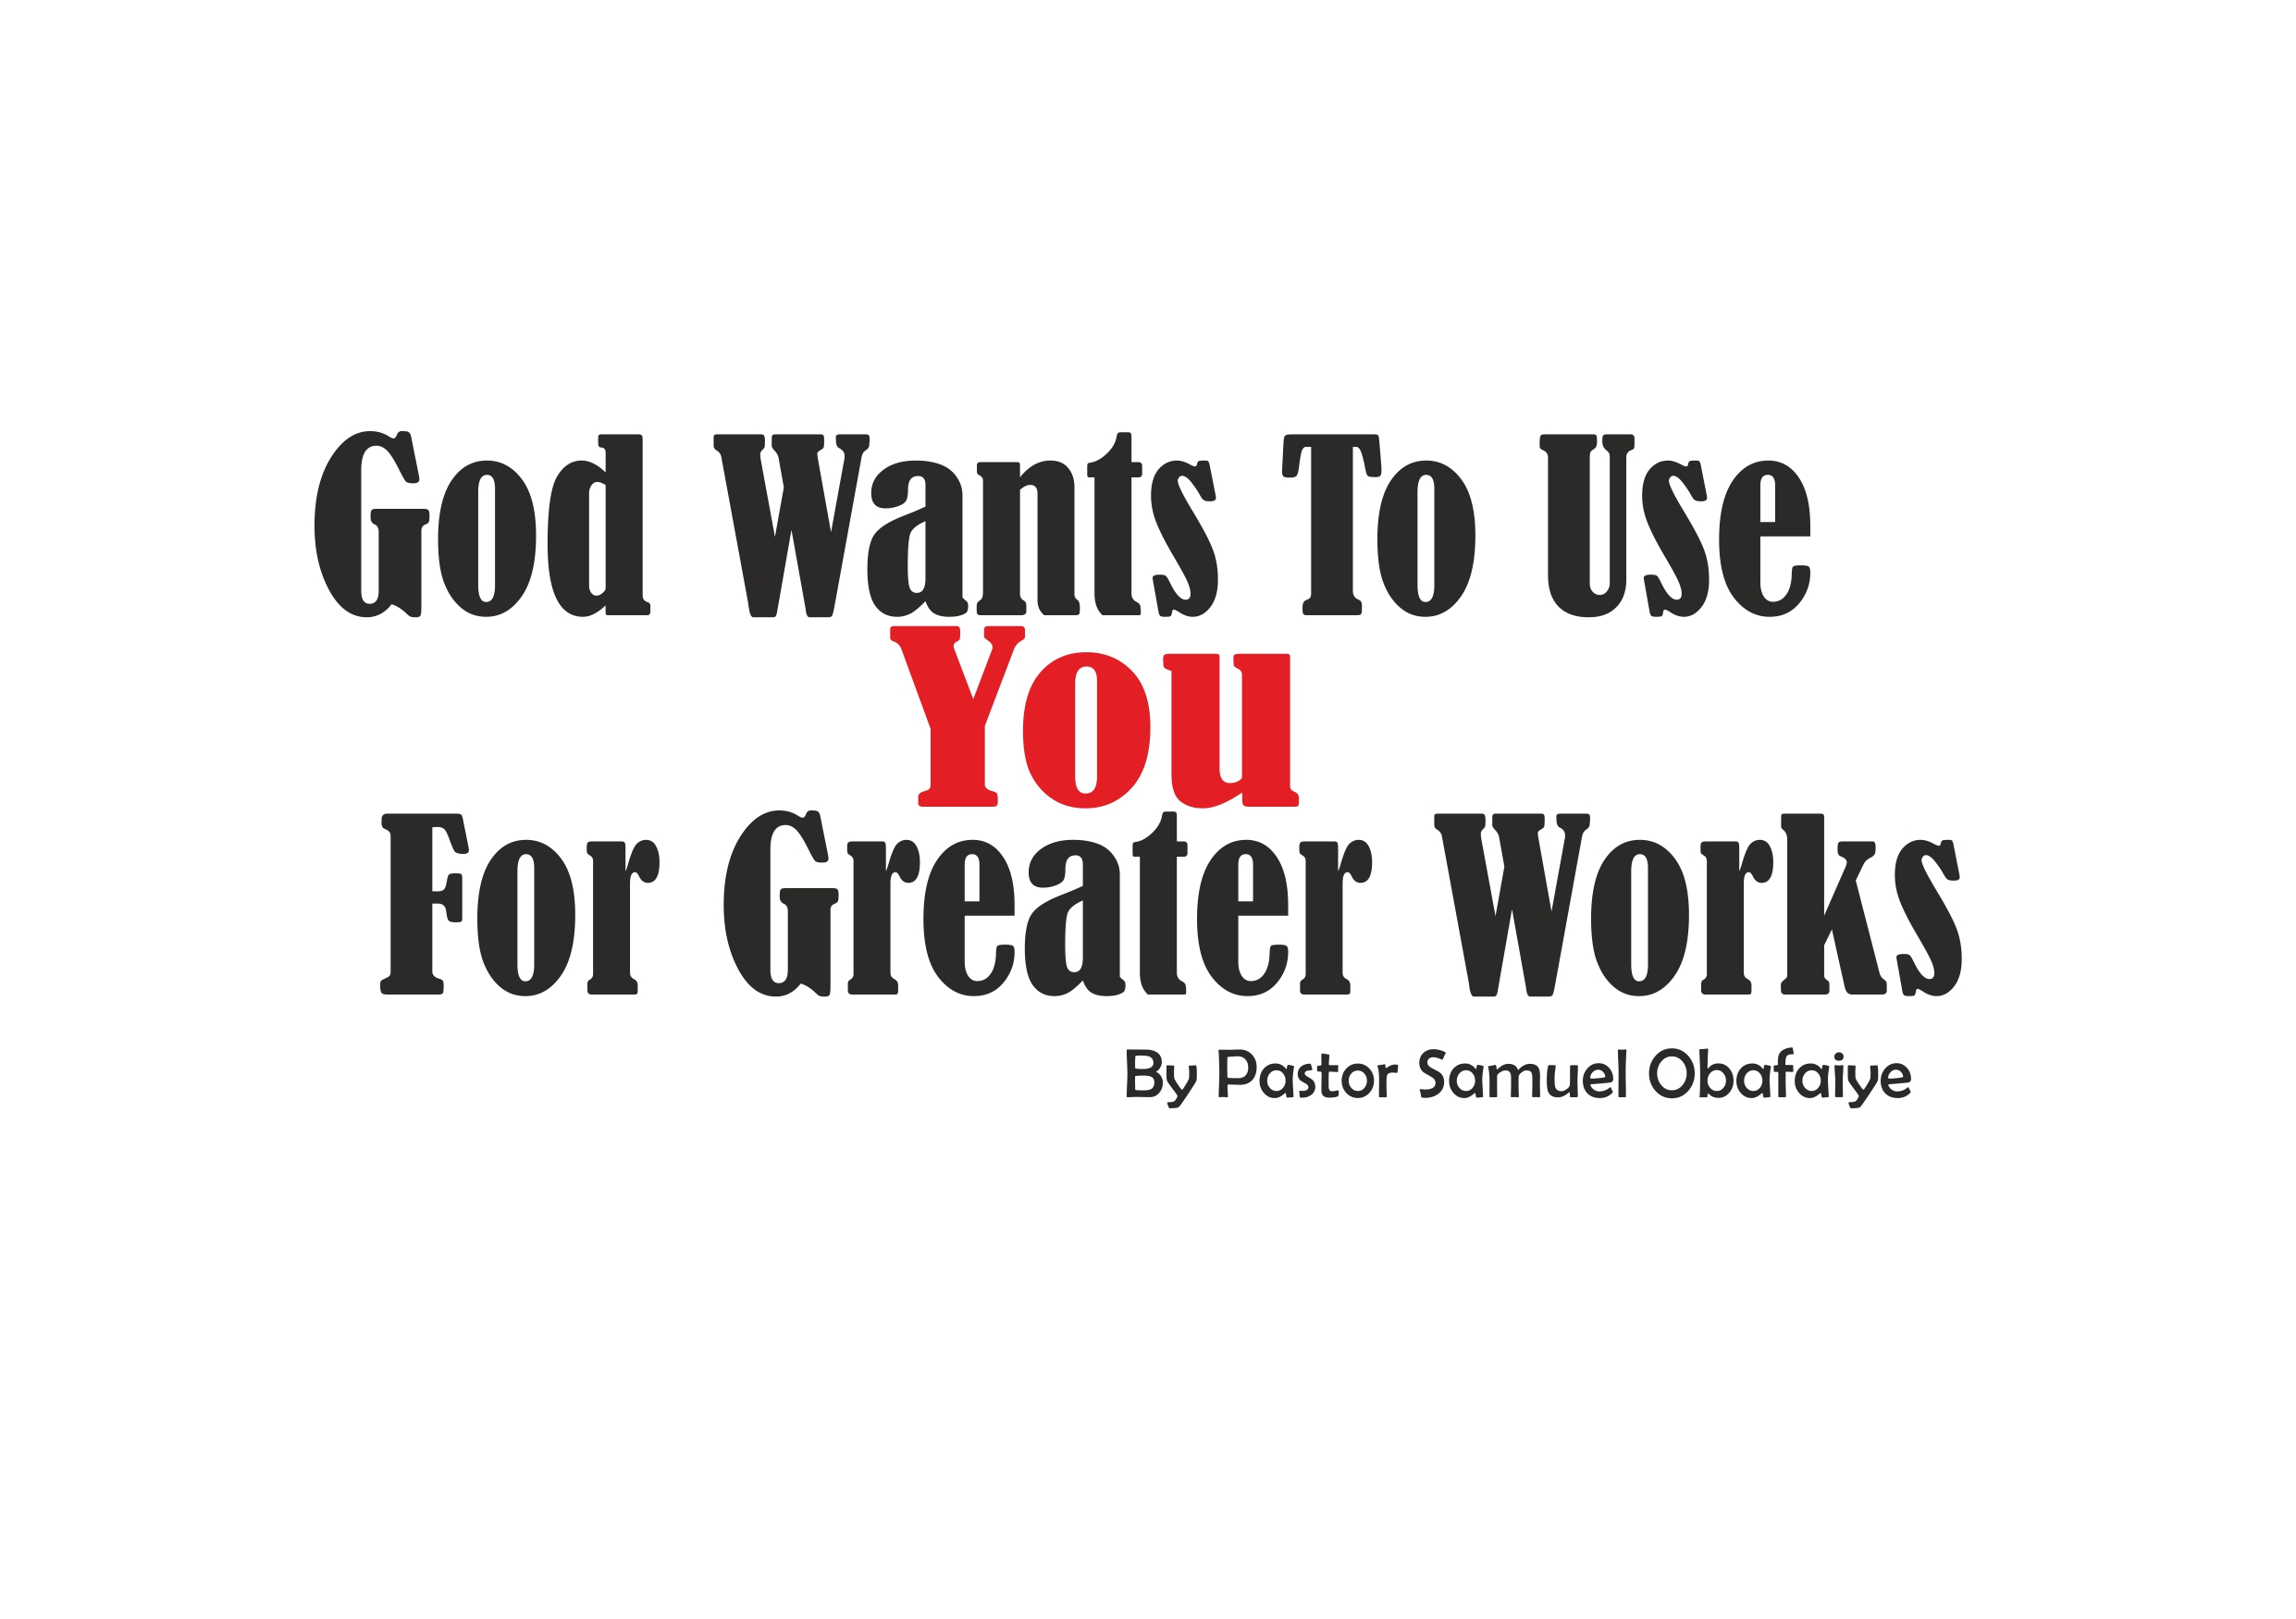 God Wants To Use You For Greater Works, by Pastor Samuel Obafaiye